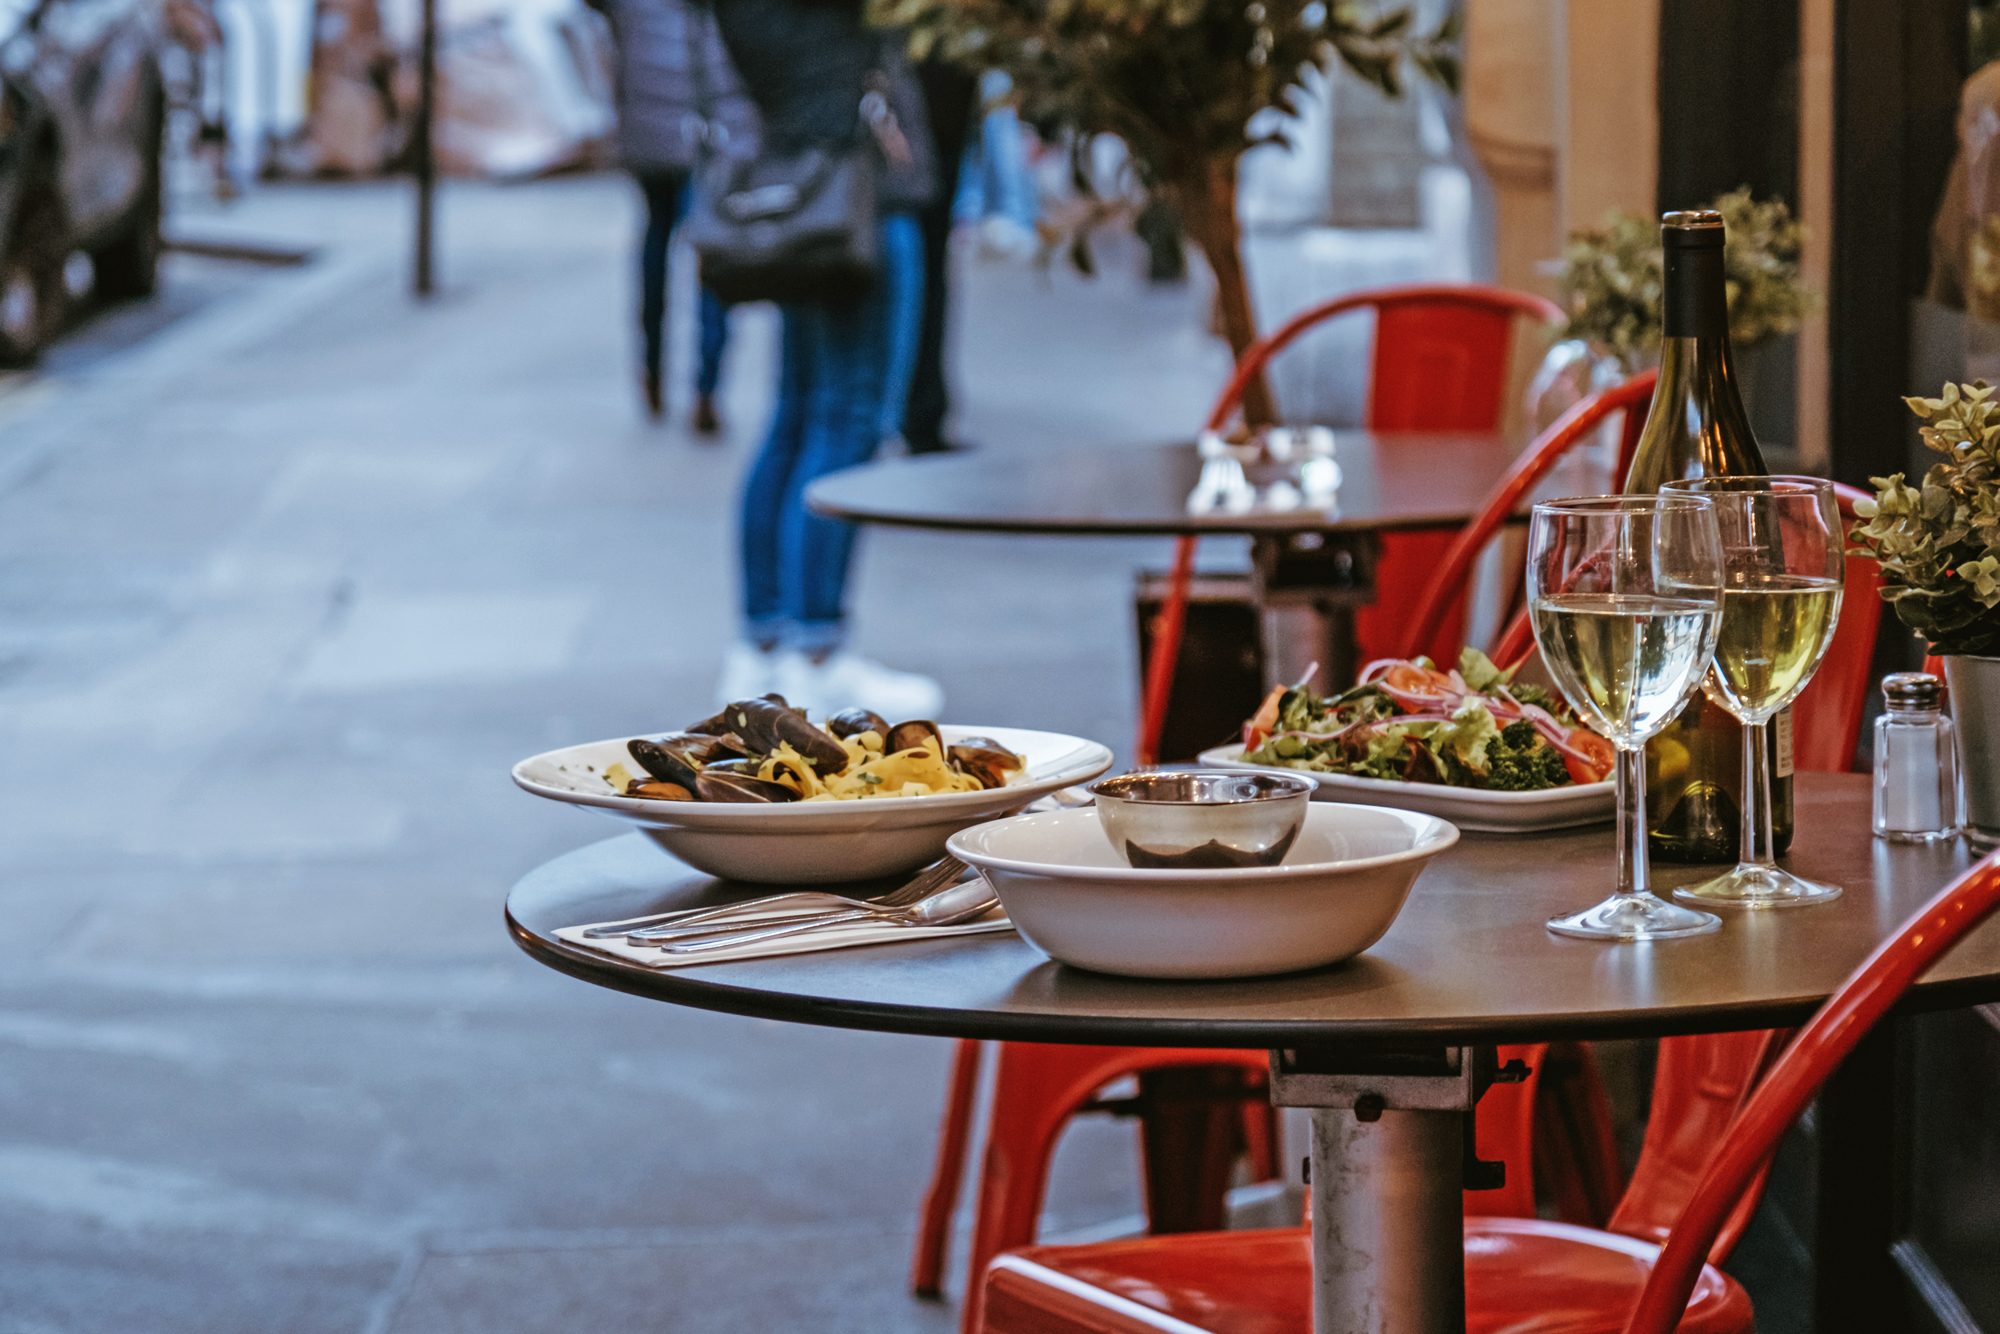 NYC Outdoor Dining Plan